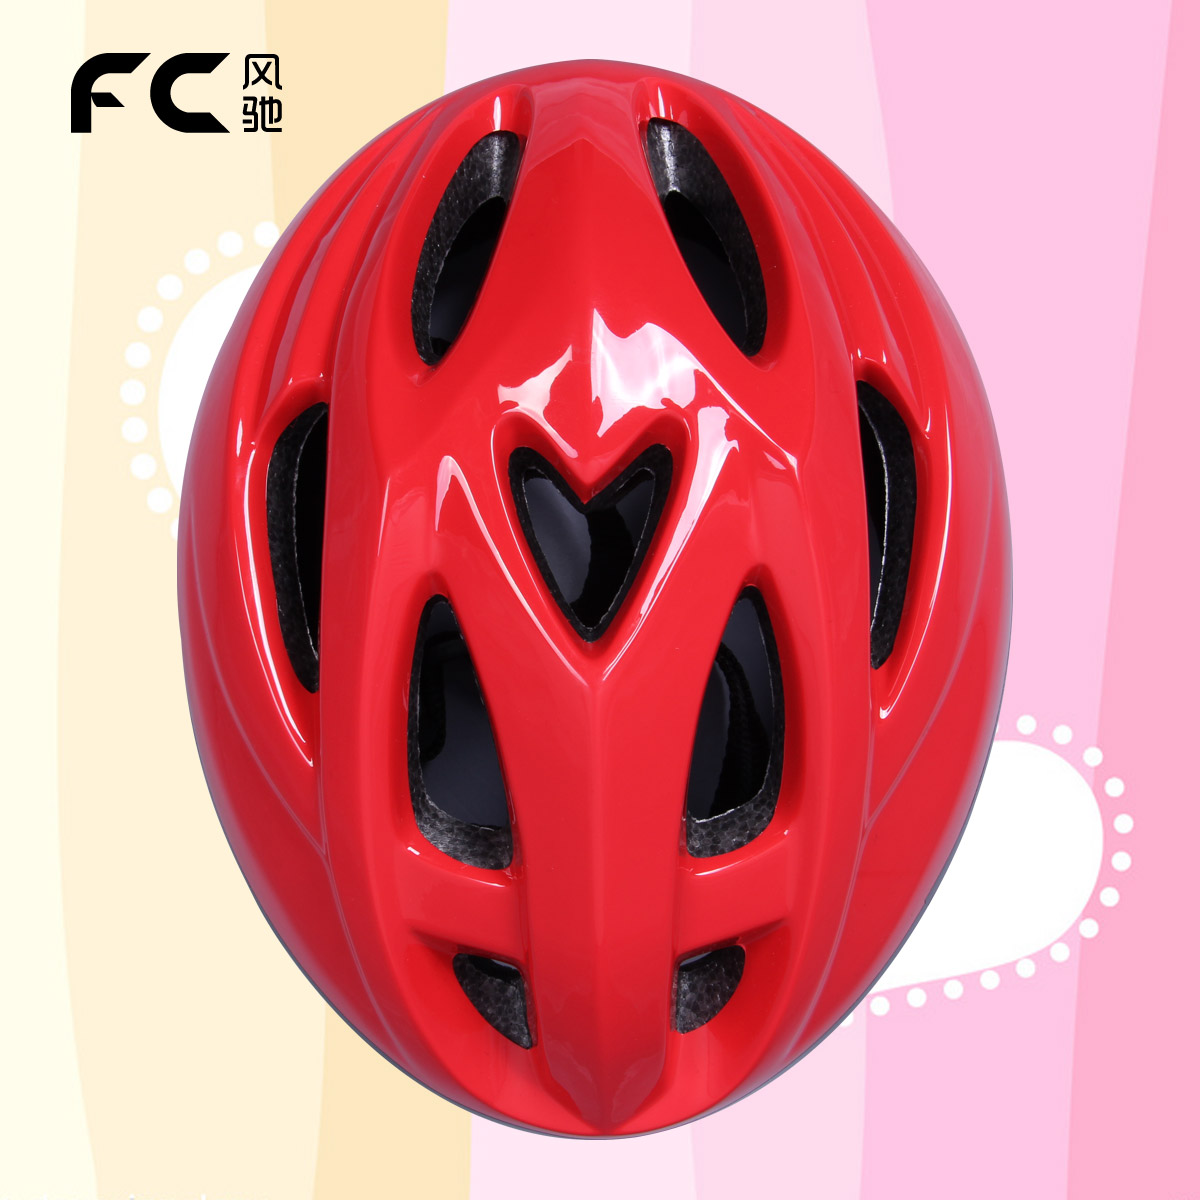 Fc child helmet pulley skateboard safety bicycle roller skating protective gear red - Professional Outdoor sport products store